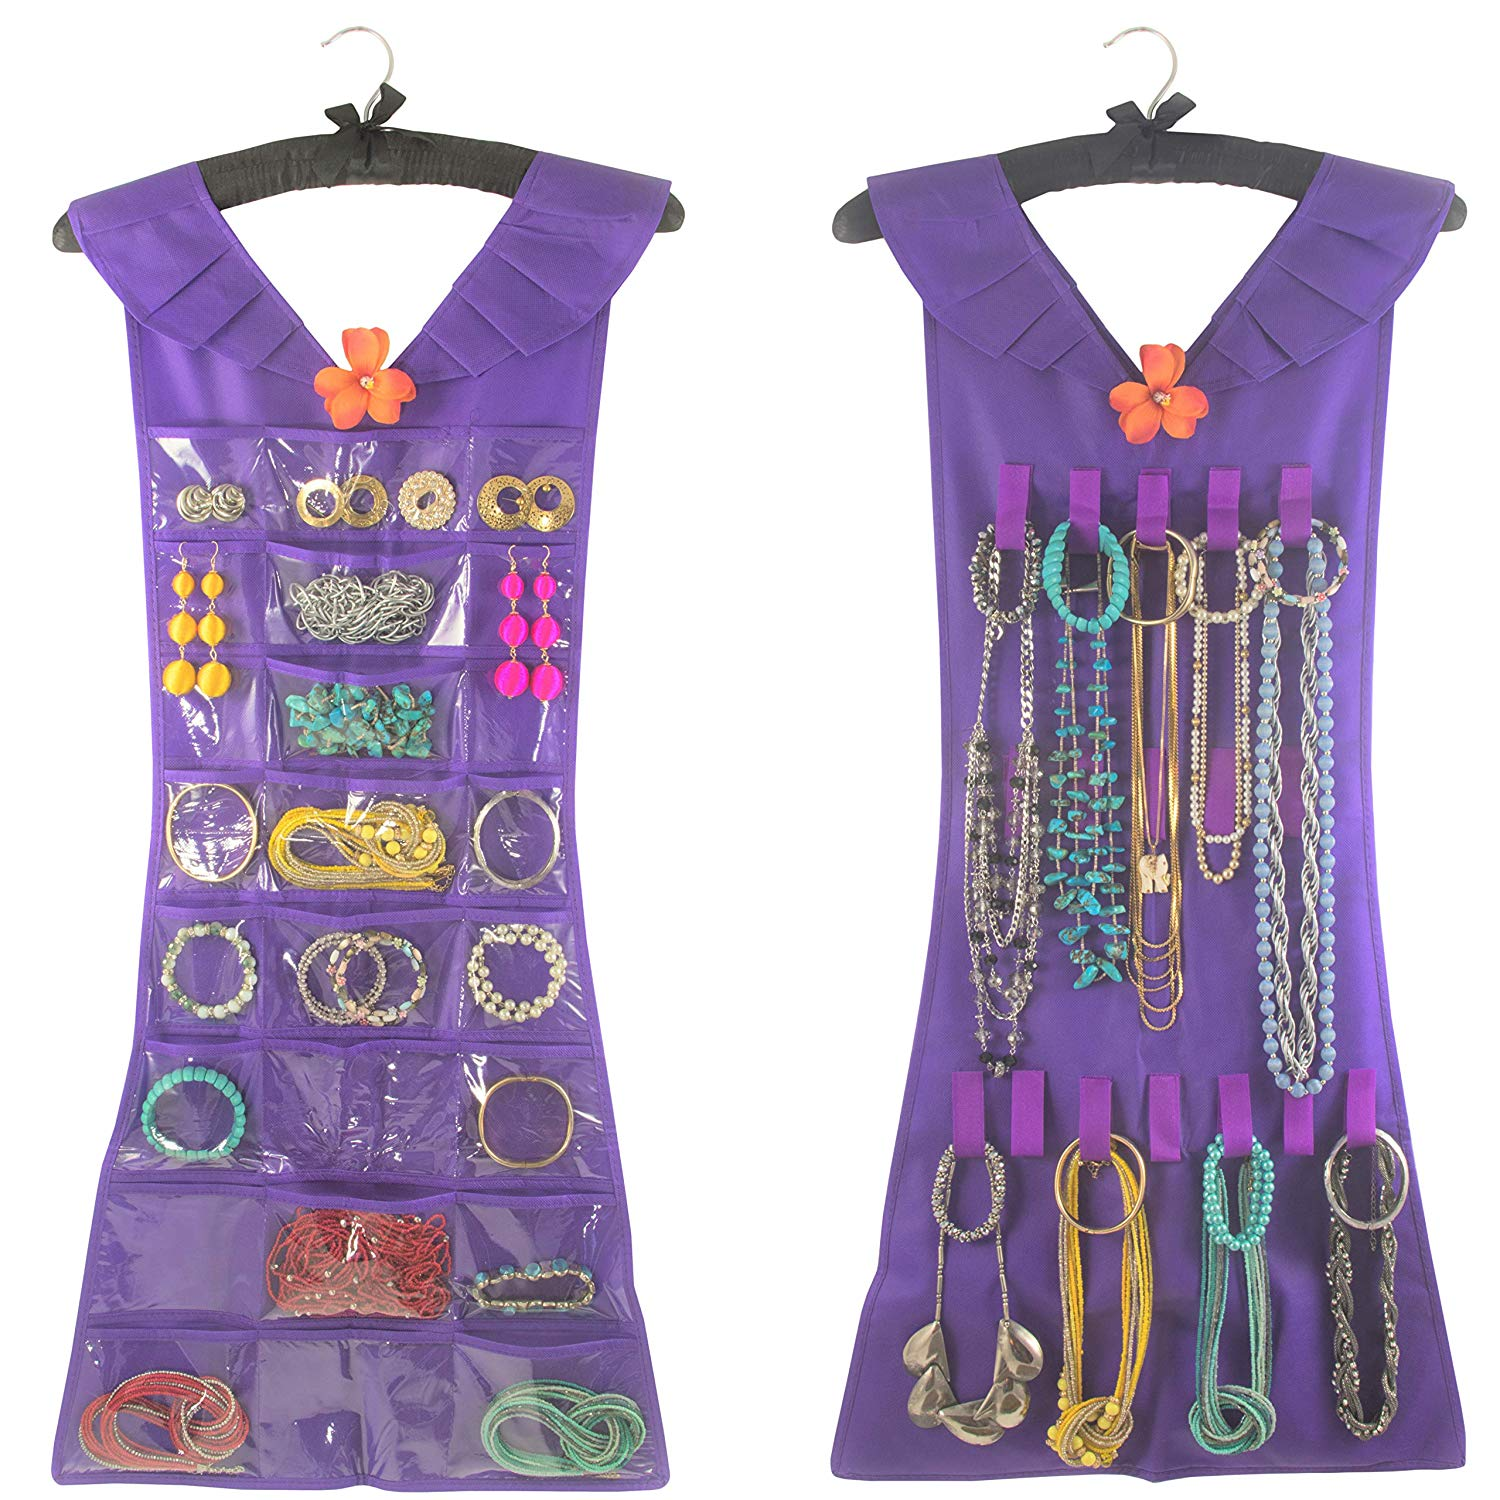 Marcus Mayfield Hanging Jewelry Organizer Closet Storage for Jewelry-Hair Accessories-Makeup-Necklaces-Bracelets-Earrings (Black Satin Hanger, Purple Dress, 24 Pockets 17 Hooks)